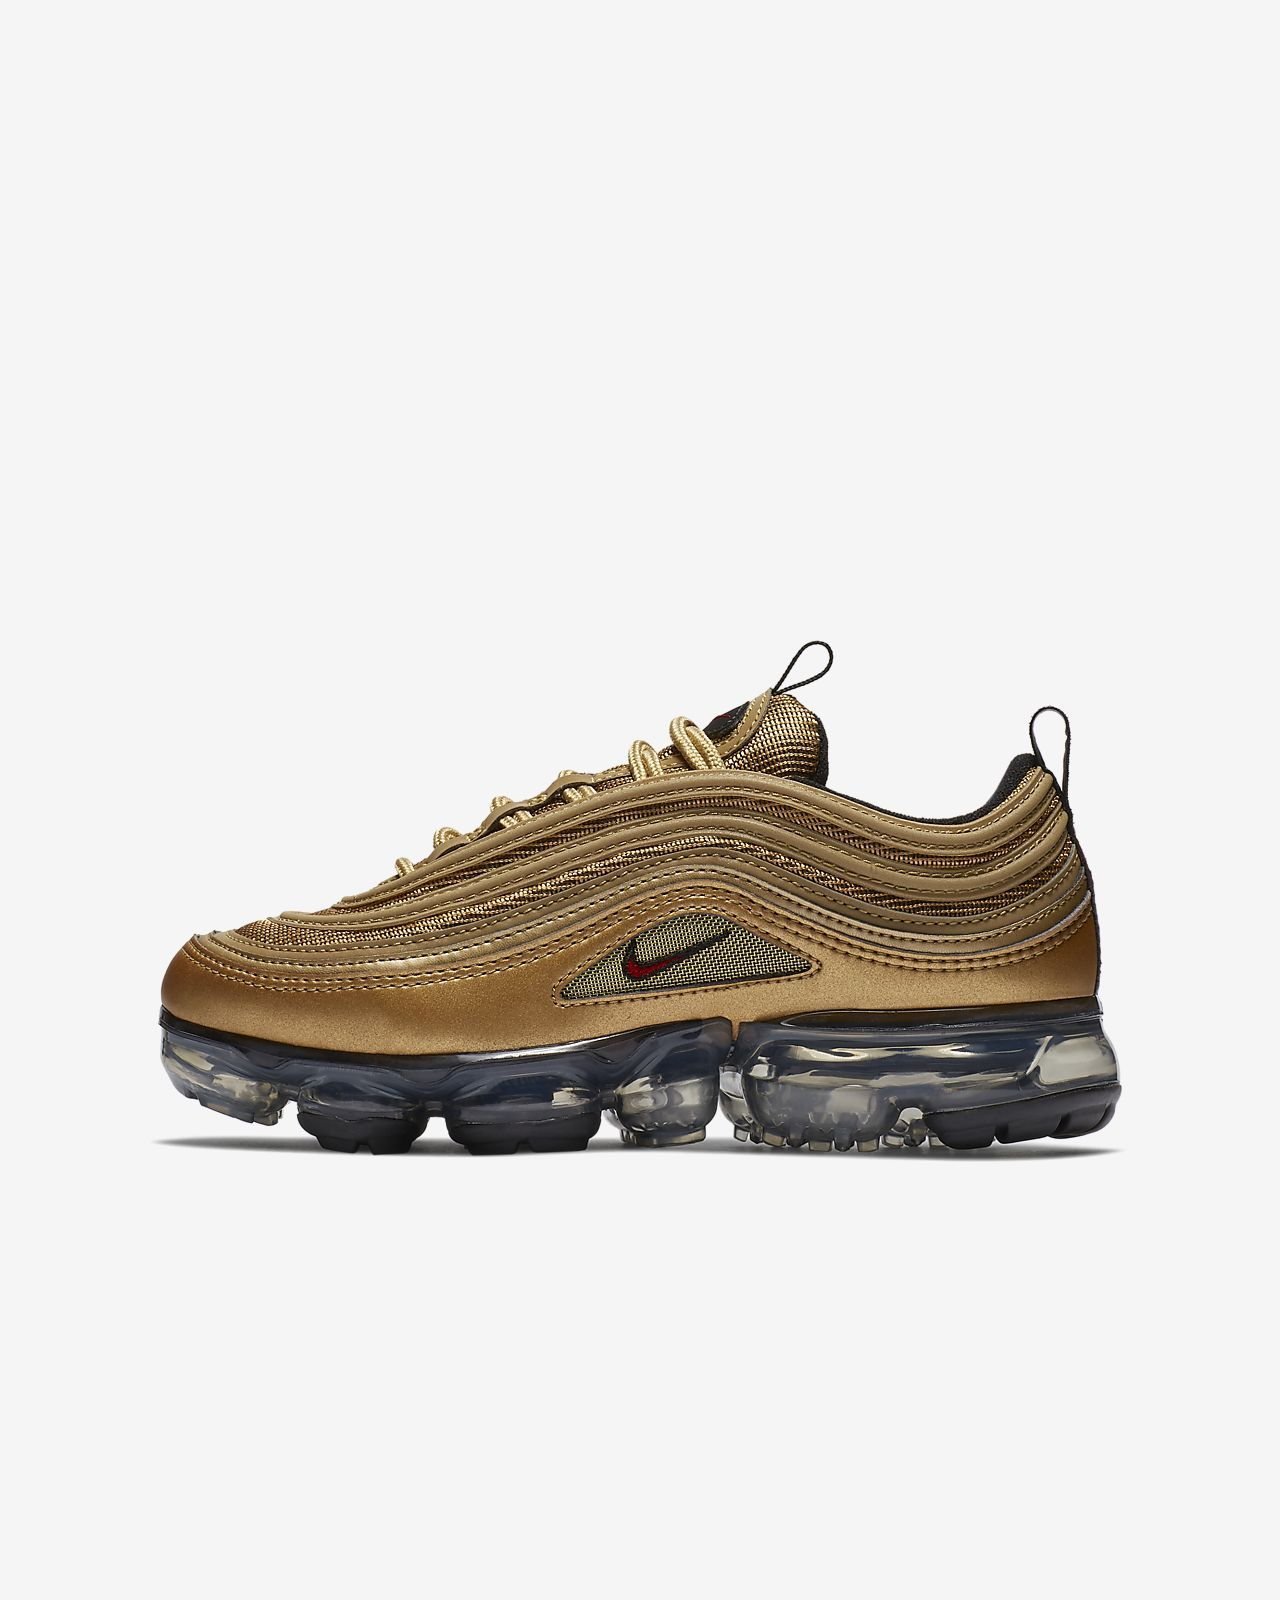 f52b180a8a Big Kids' Nike Air VaporMax 97 Shoe Metallic Gold/Black/White/Varsity Red  Style: AQ2657-700